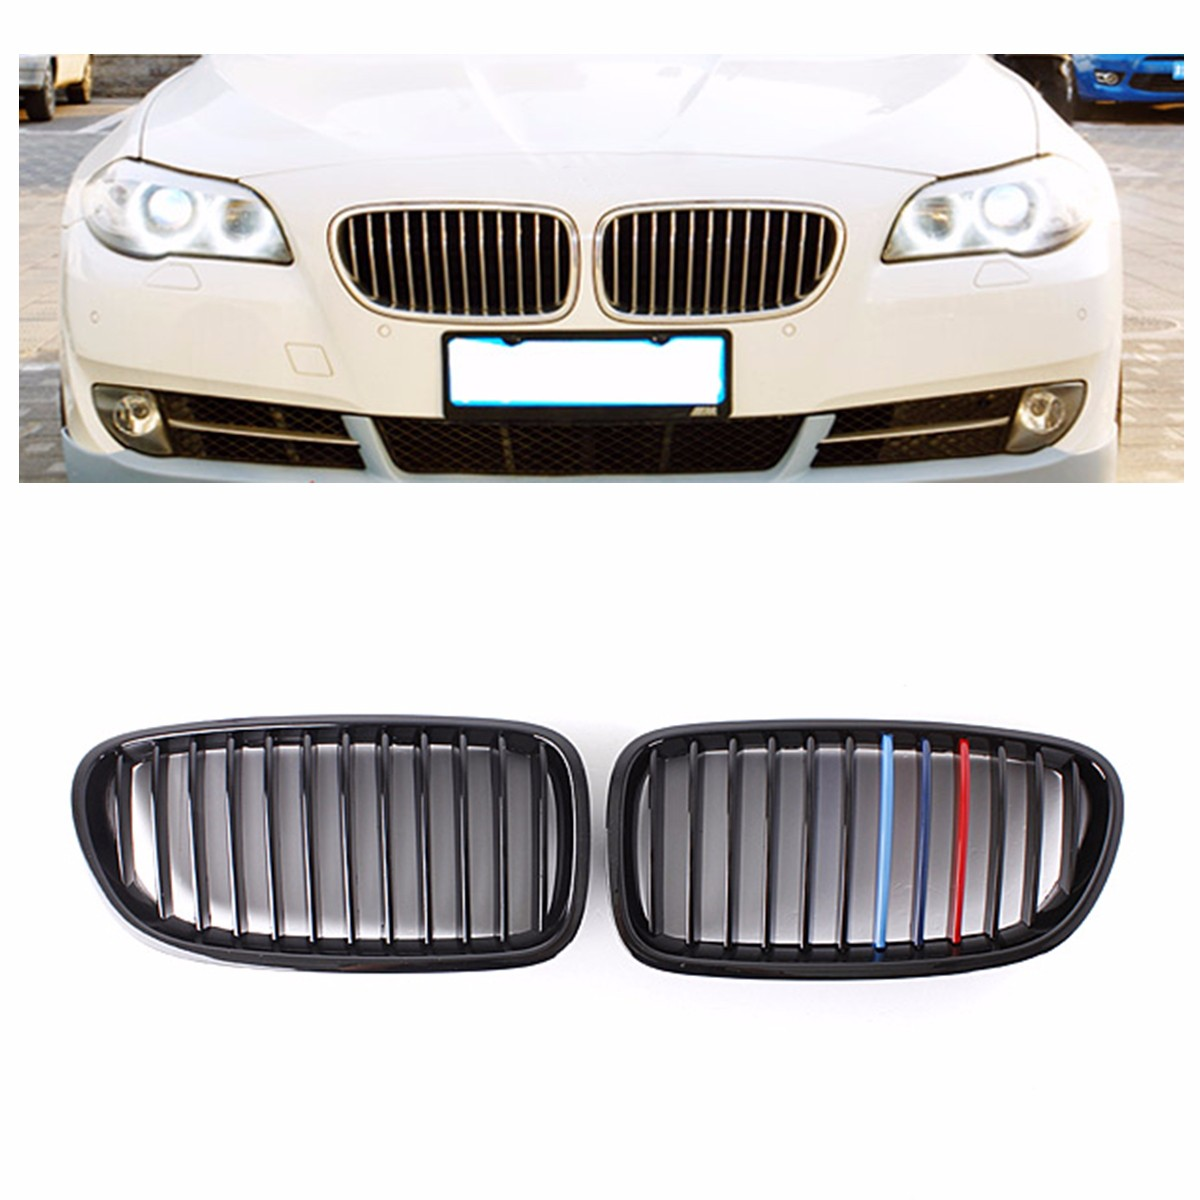 for BMW F10 F11 F18 M5 5 Series 2010 2011 2012 2013 Pair M Color Gloss Black Front Bumper Hood Grill Grille Brand New gloss black front dual line grille grill for bmw f20 f21 1 series 118i 2010 2011 2012 2013 2014